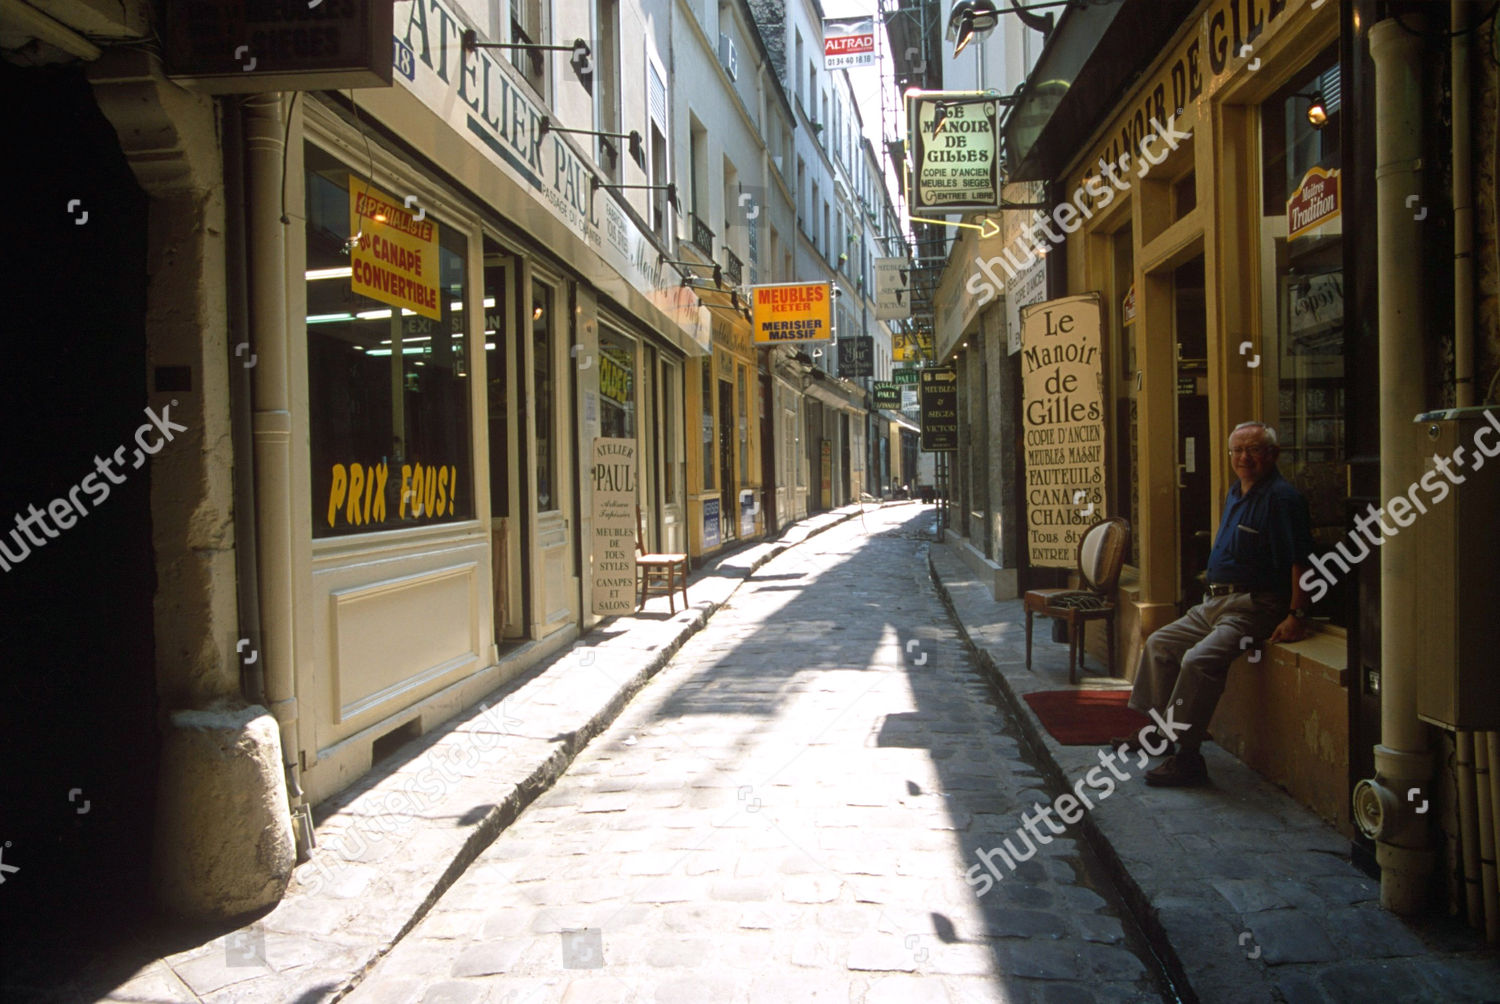 Meubles Basic Line France Editorial Stock Photo Of Street Paris France 458850aq Shutterstock